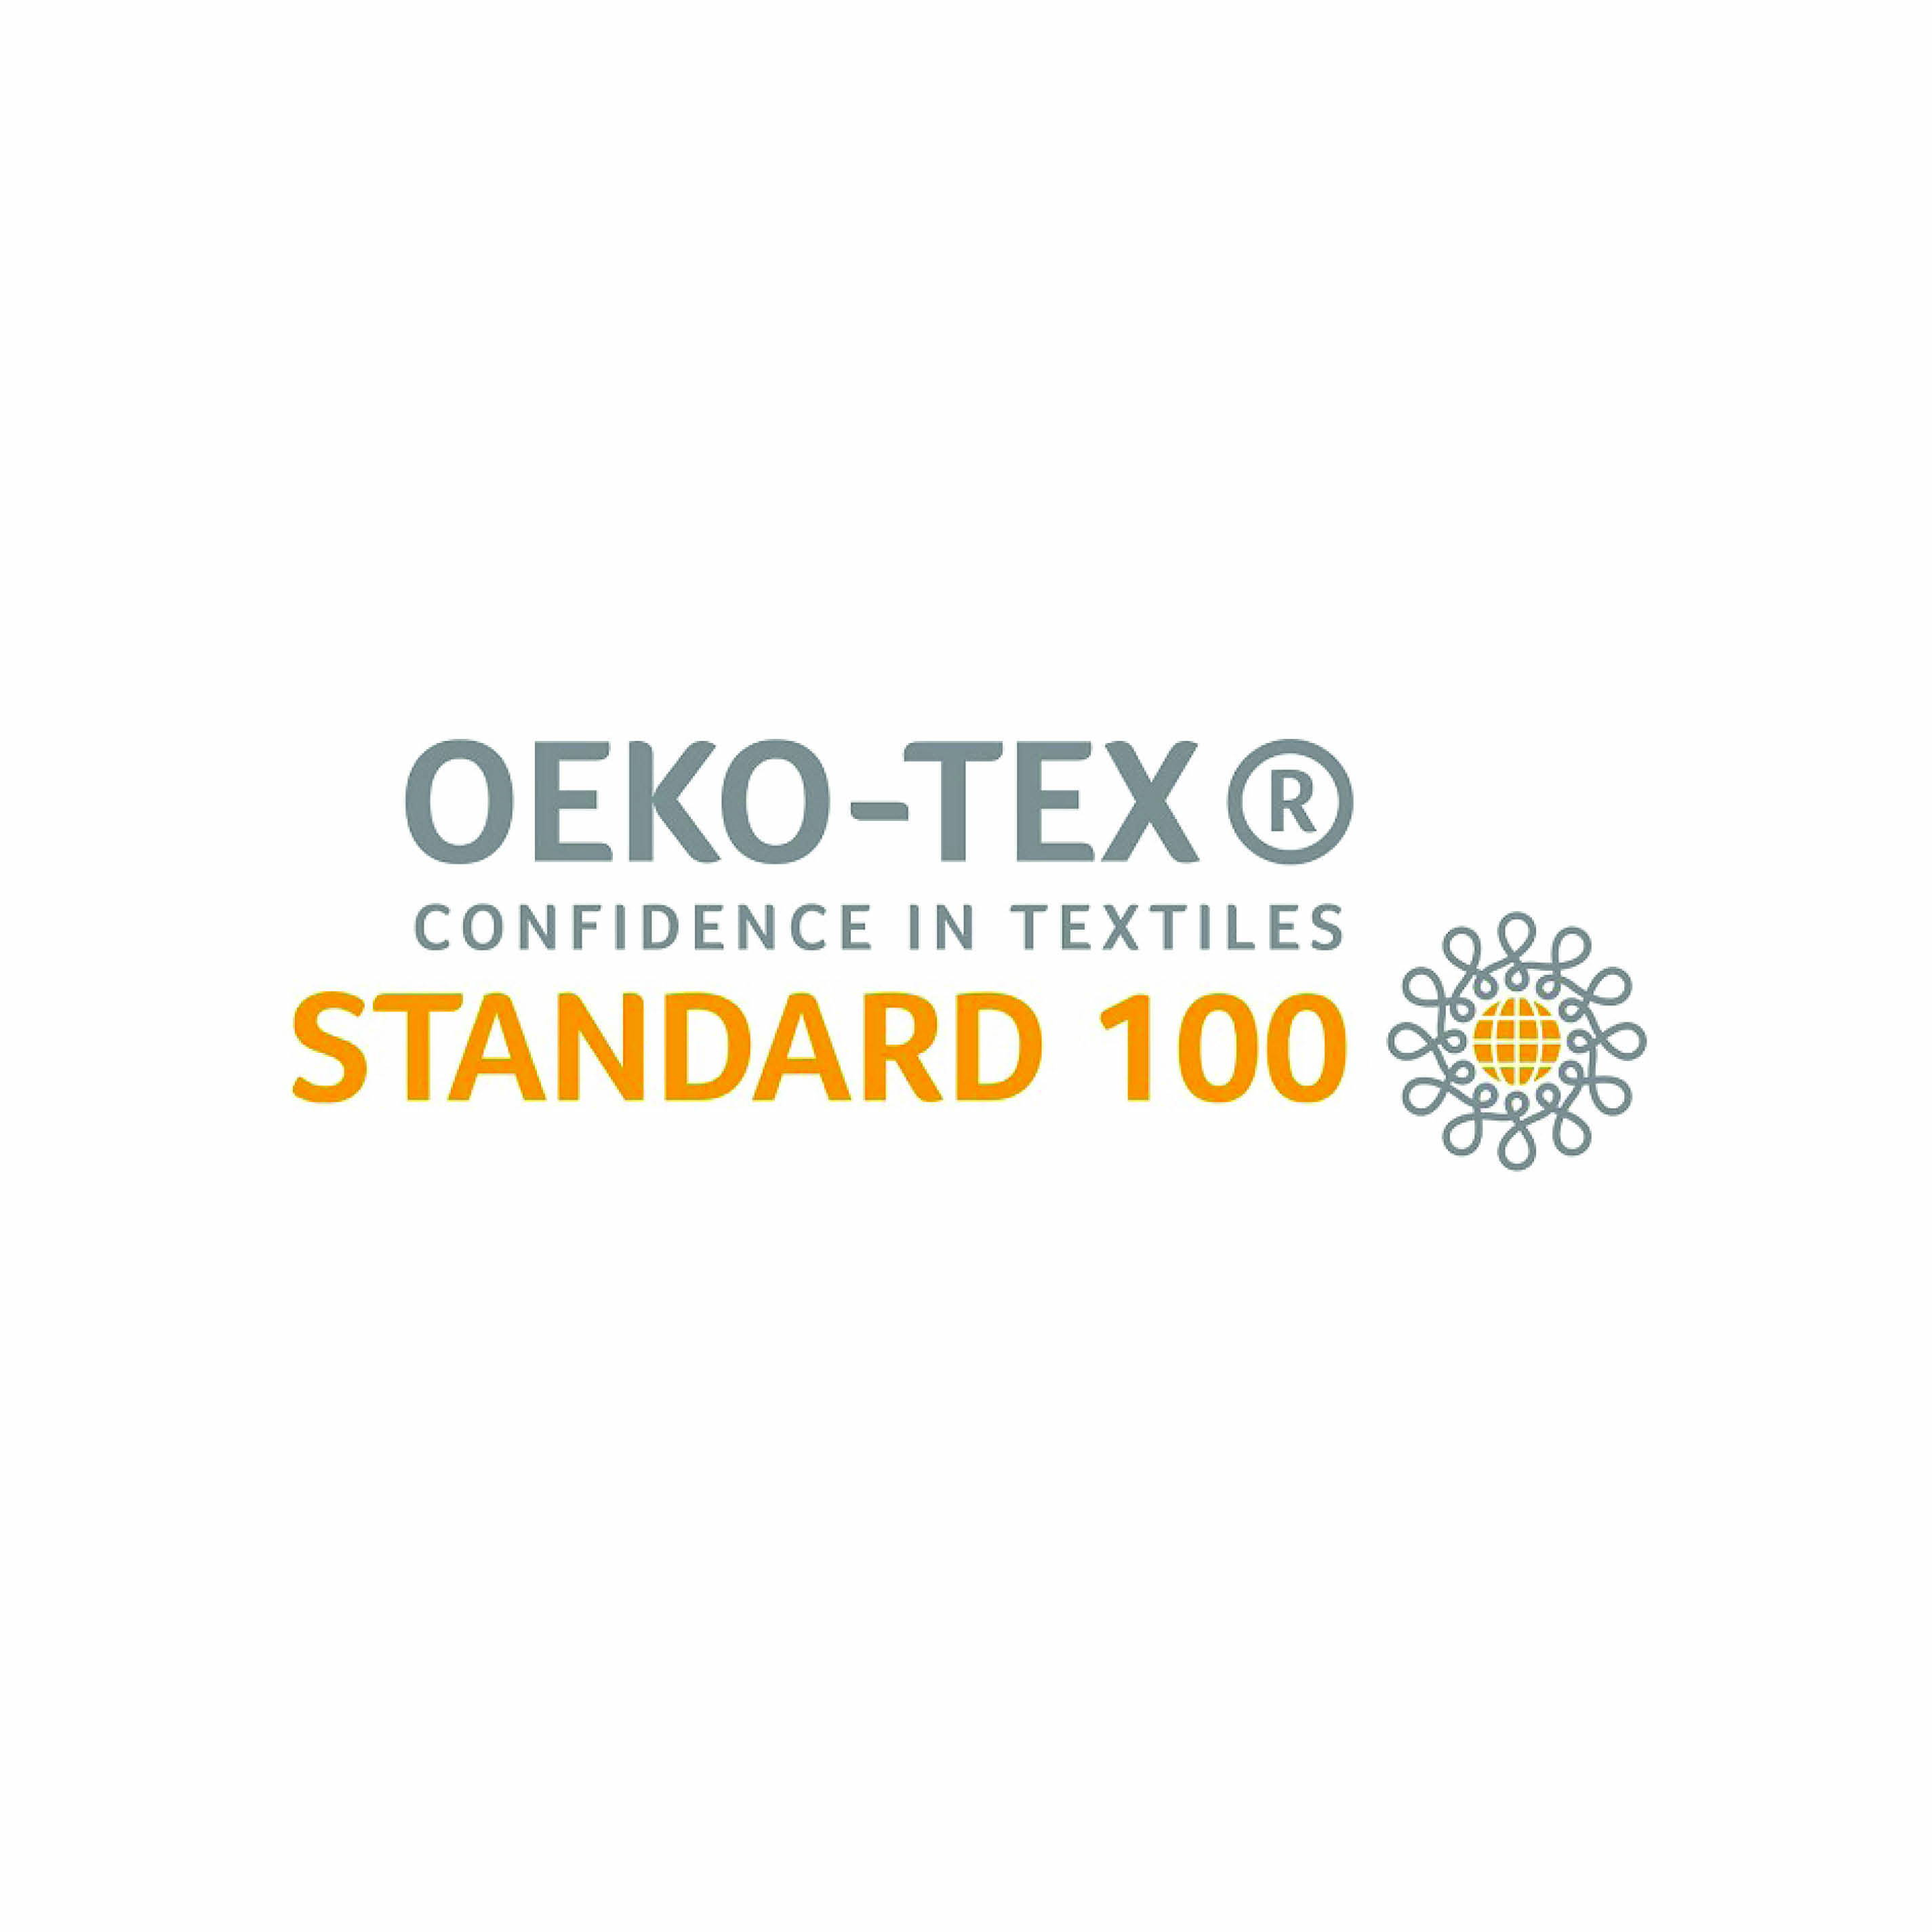 Oeko-Tex confidence in textiles icon. Graphic